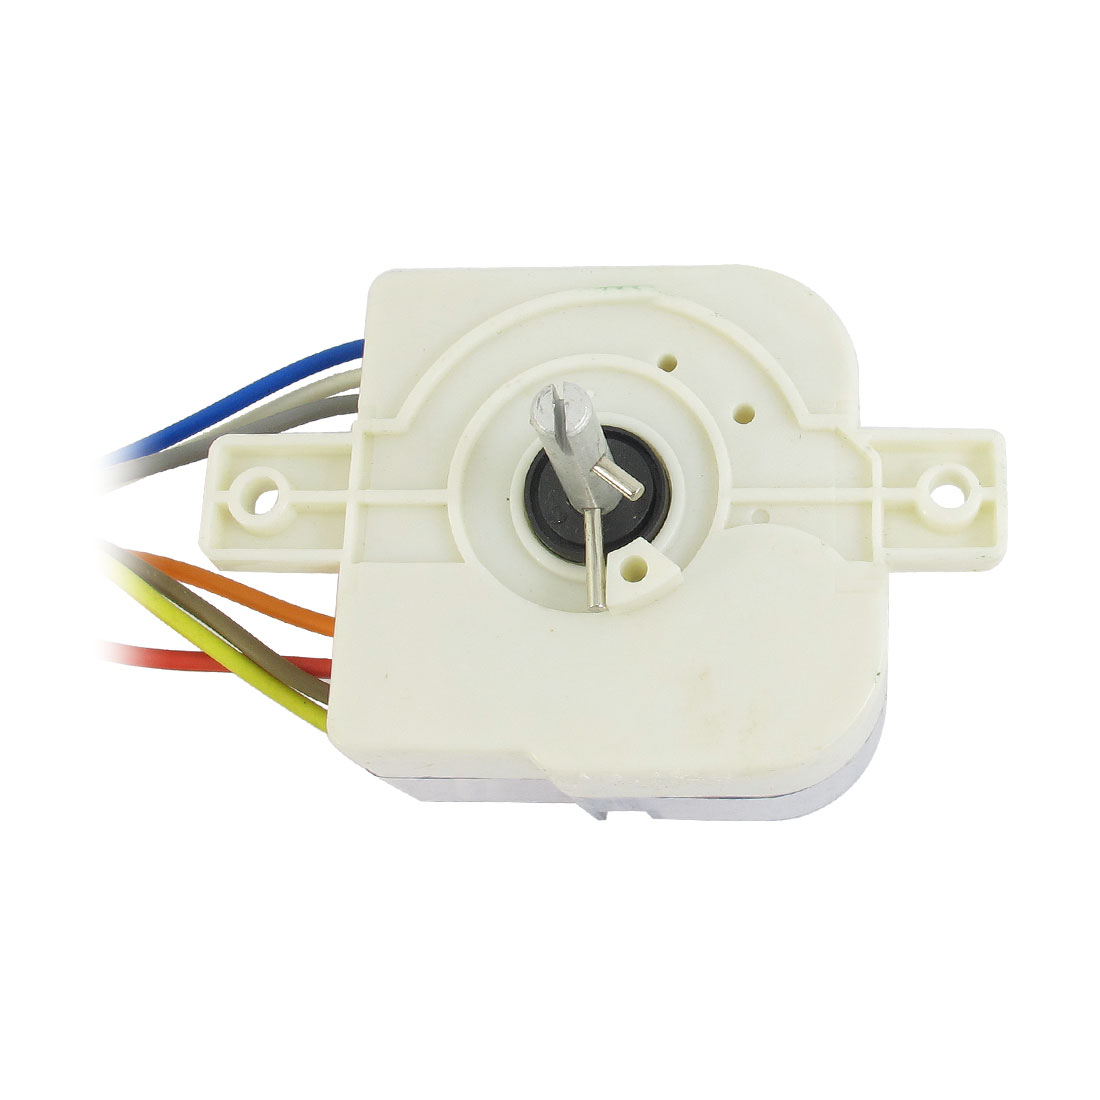 DXT15 AC 220V 3A 7 Wires 45 Degree Rotary Shaft Washing Machine Washer Timer